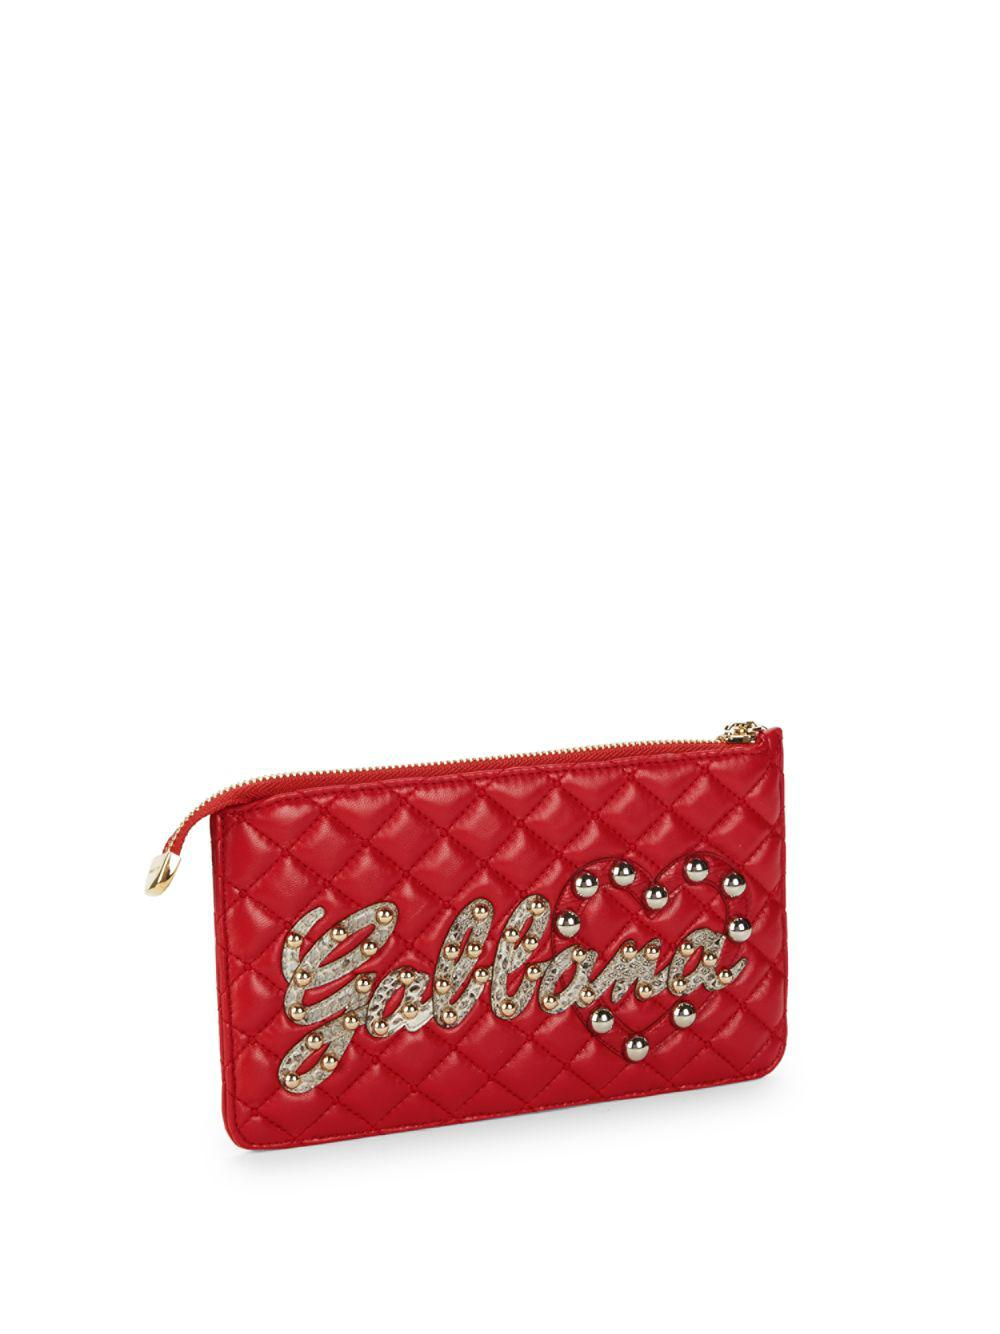 logo studded quilted purse Dolce & Gabbana